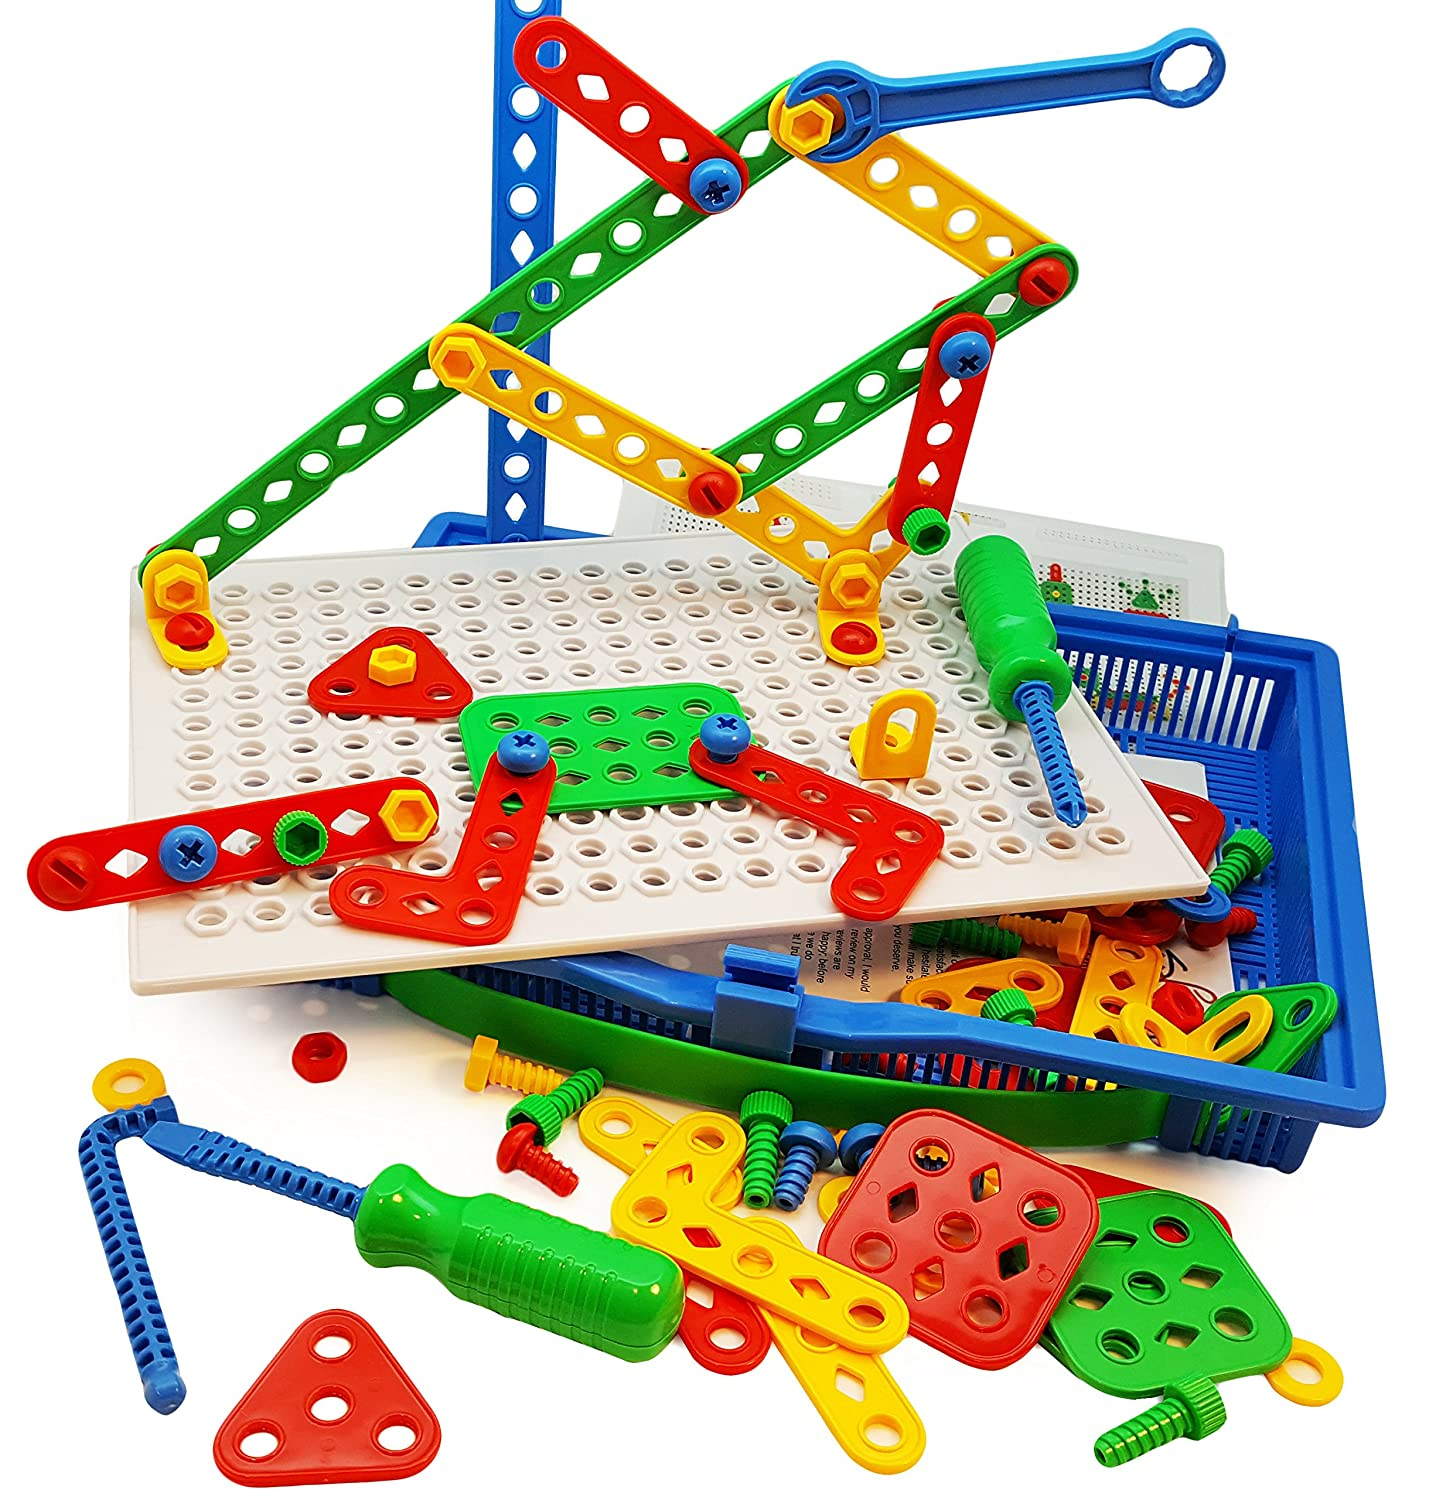 Construction Building Toys Tool Kit by Skoolzy plete